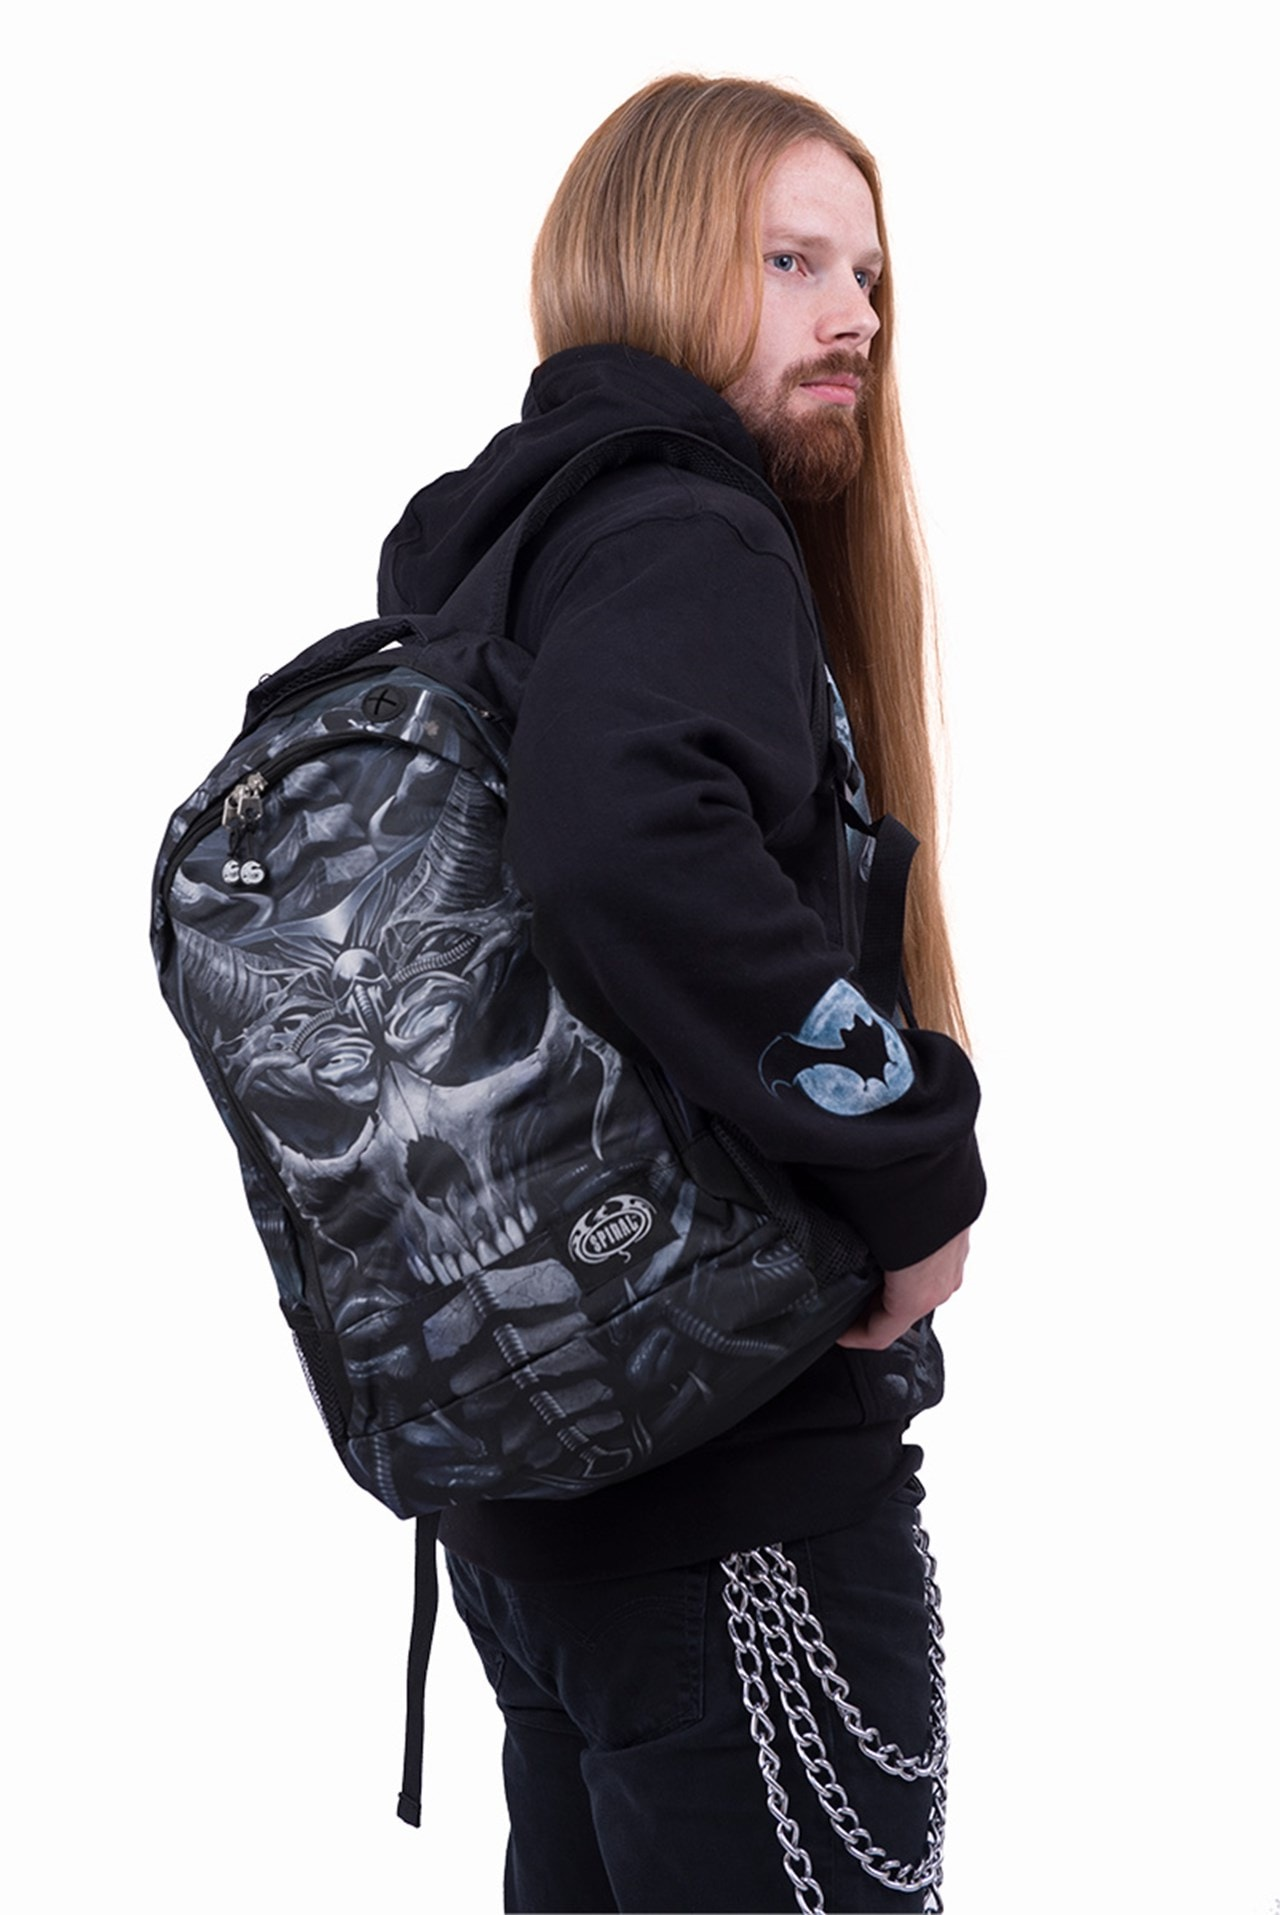 Skull Armour Backpack with Laptop Pocket - 2